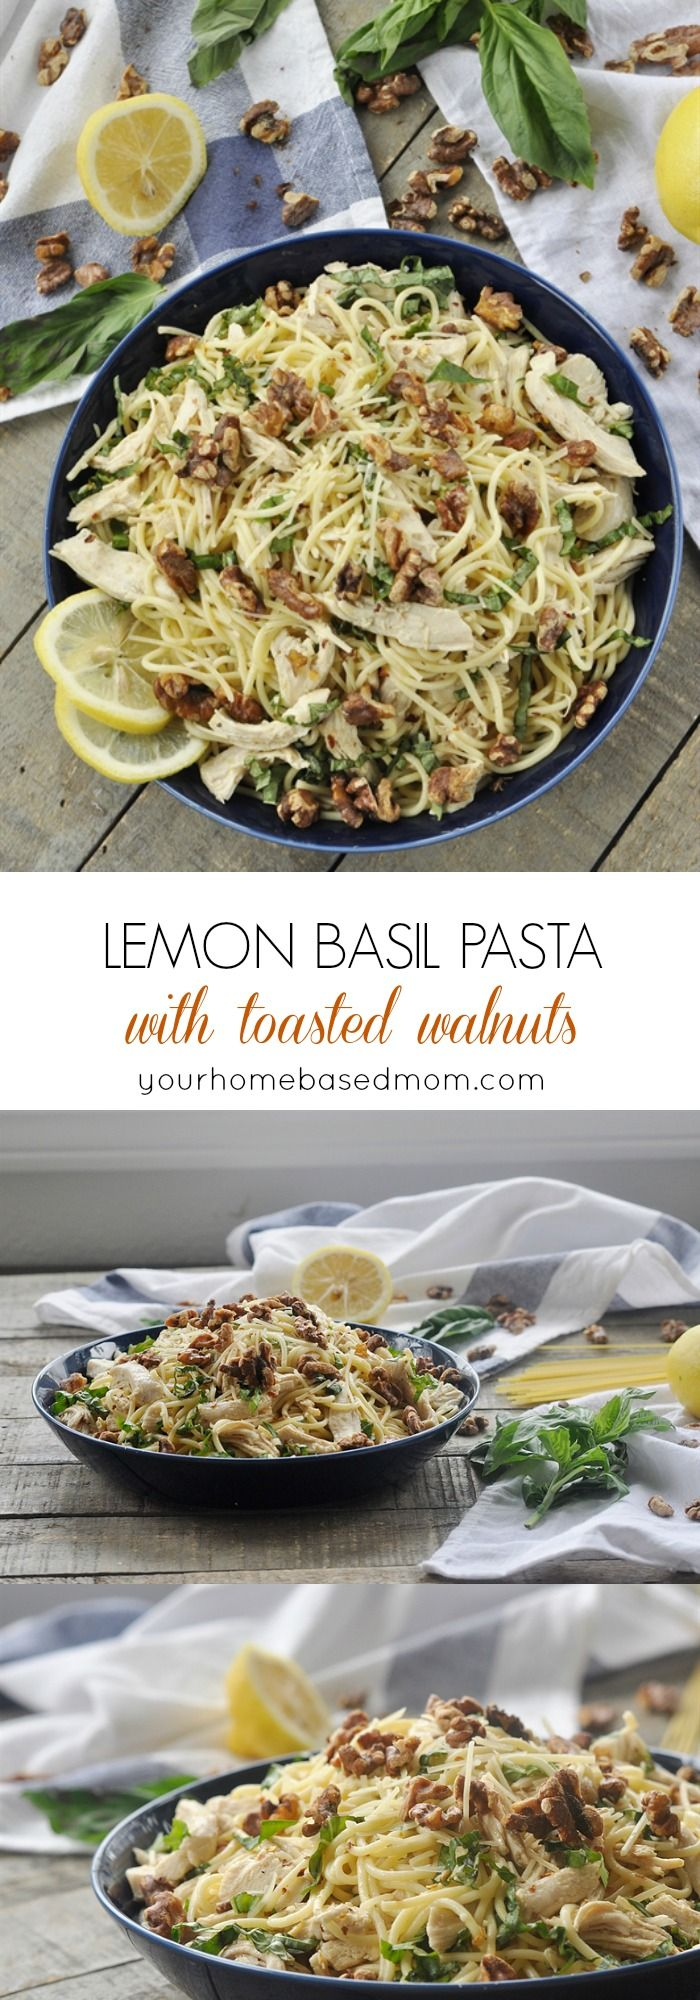 Lemon Basil Pasta with Toasted Walnuts Recipe -  I have used leftover cooked chicken or turkey in it or if you don't have any leftover chicken just cut up a chicken breast or two and cook it in some olive oil and salt and pepper and add to the pasta.